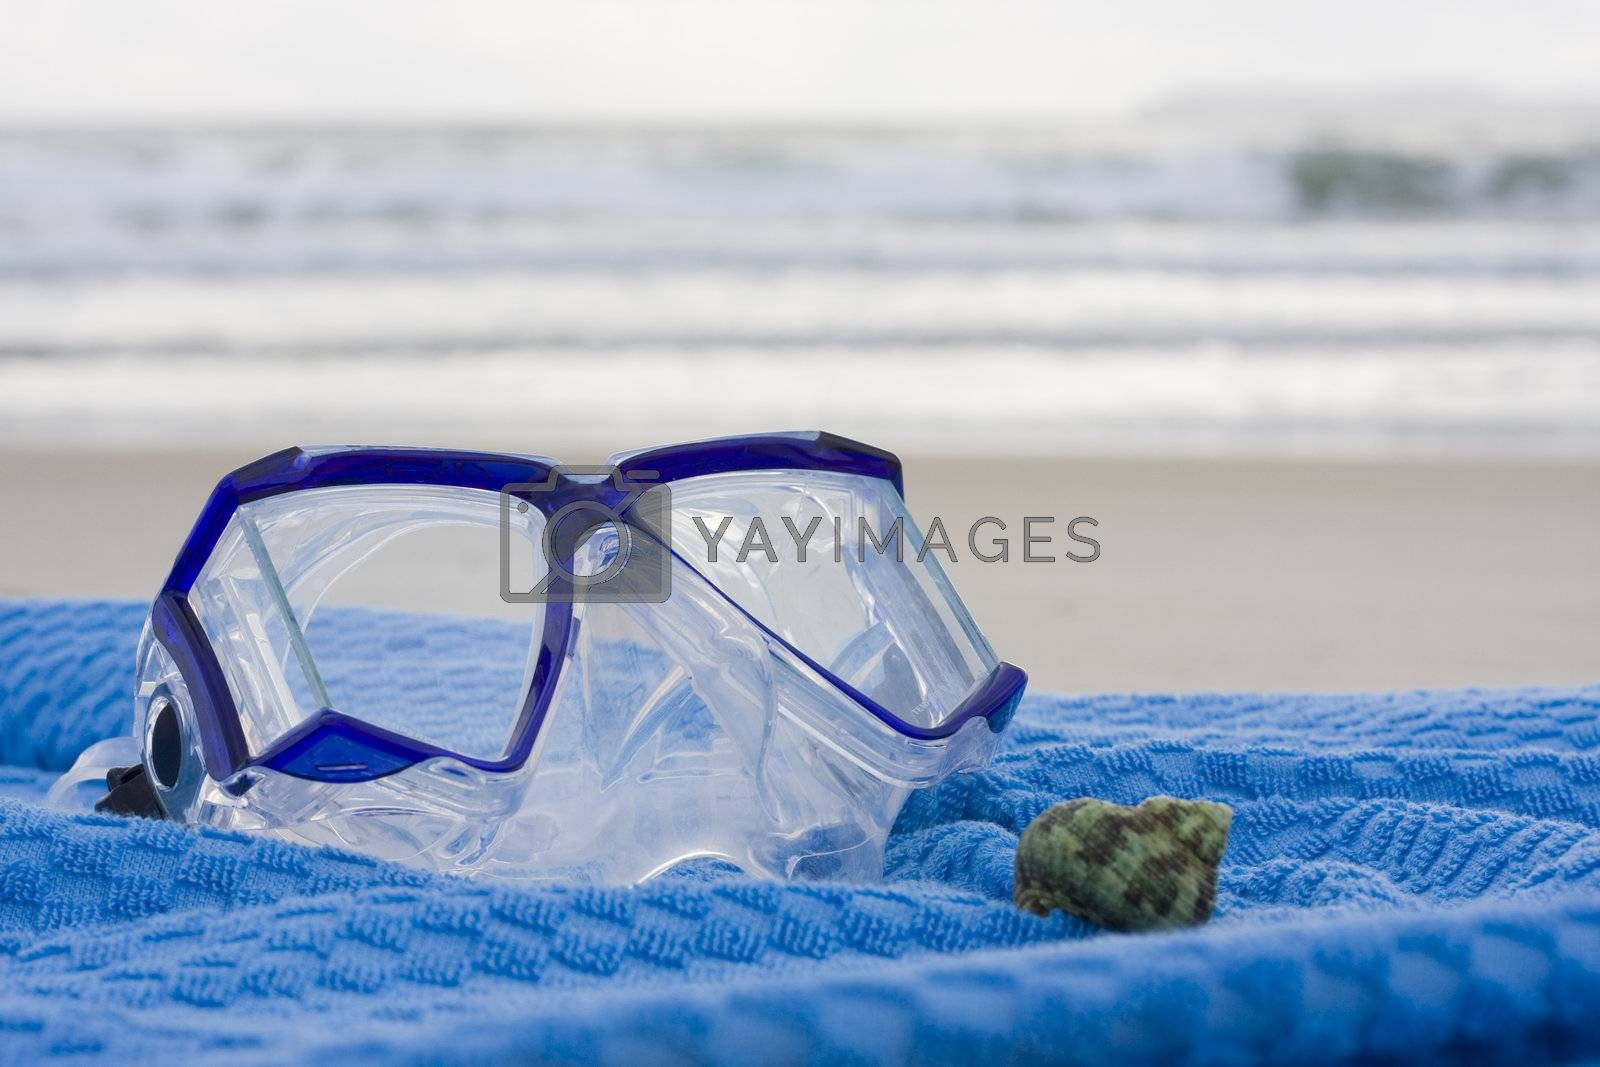 Diving mask and shell on a blue towel on the beach